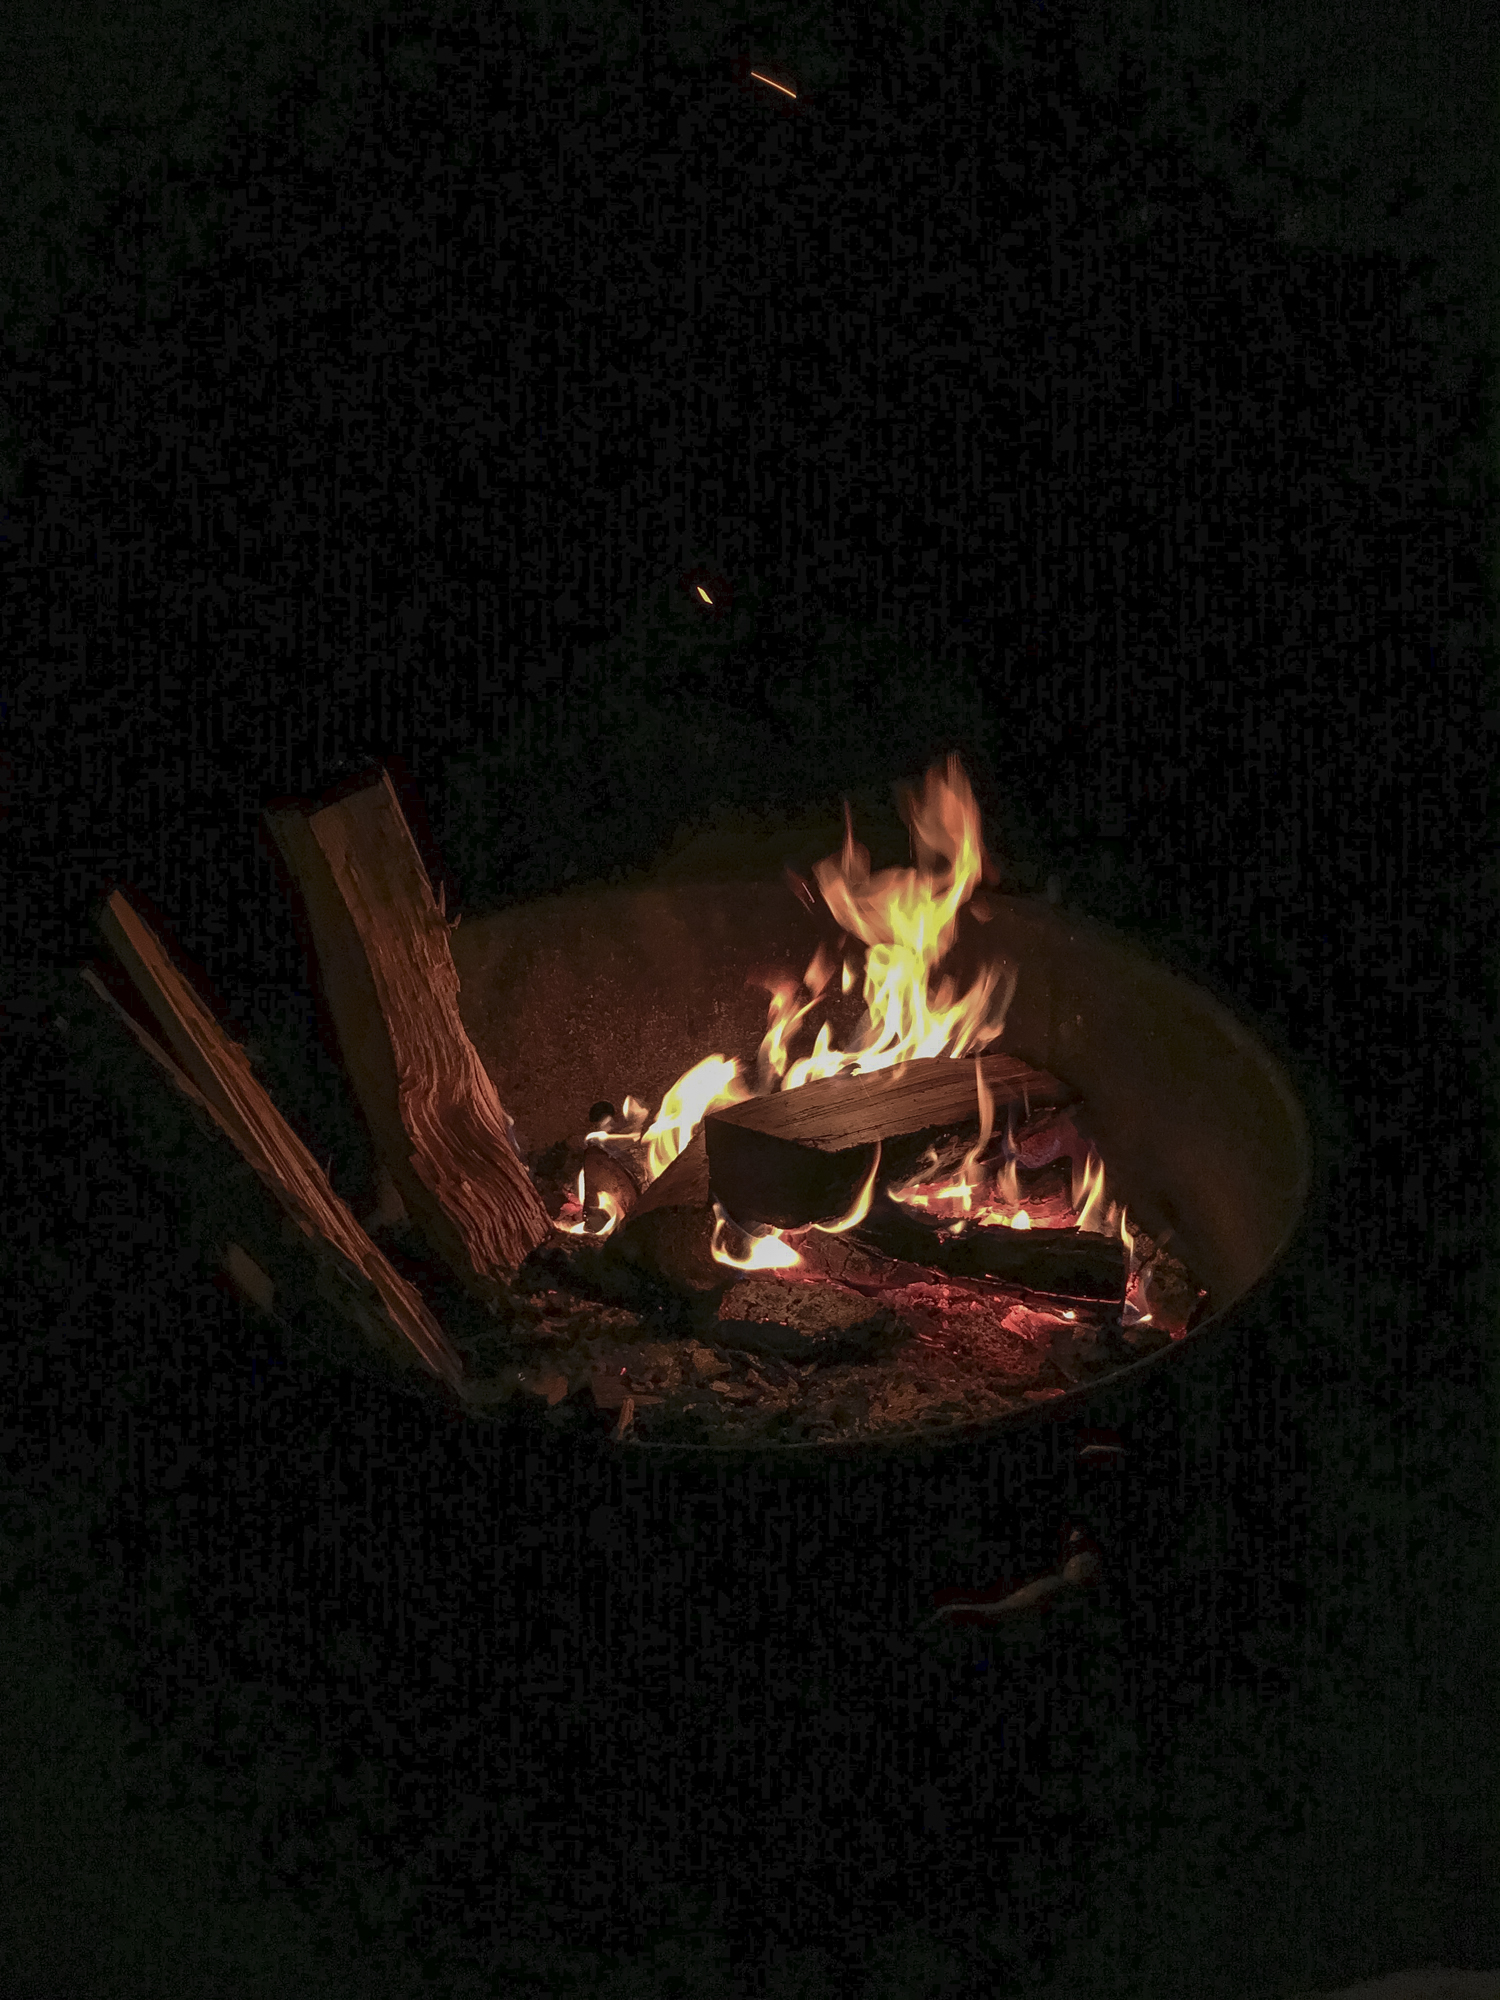 Nothing quite like sitting around a campfire